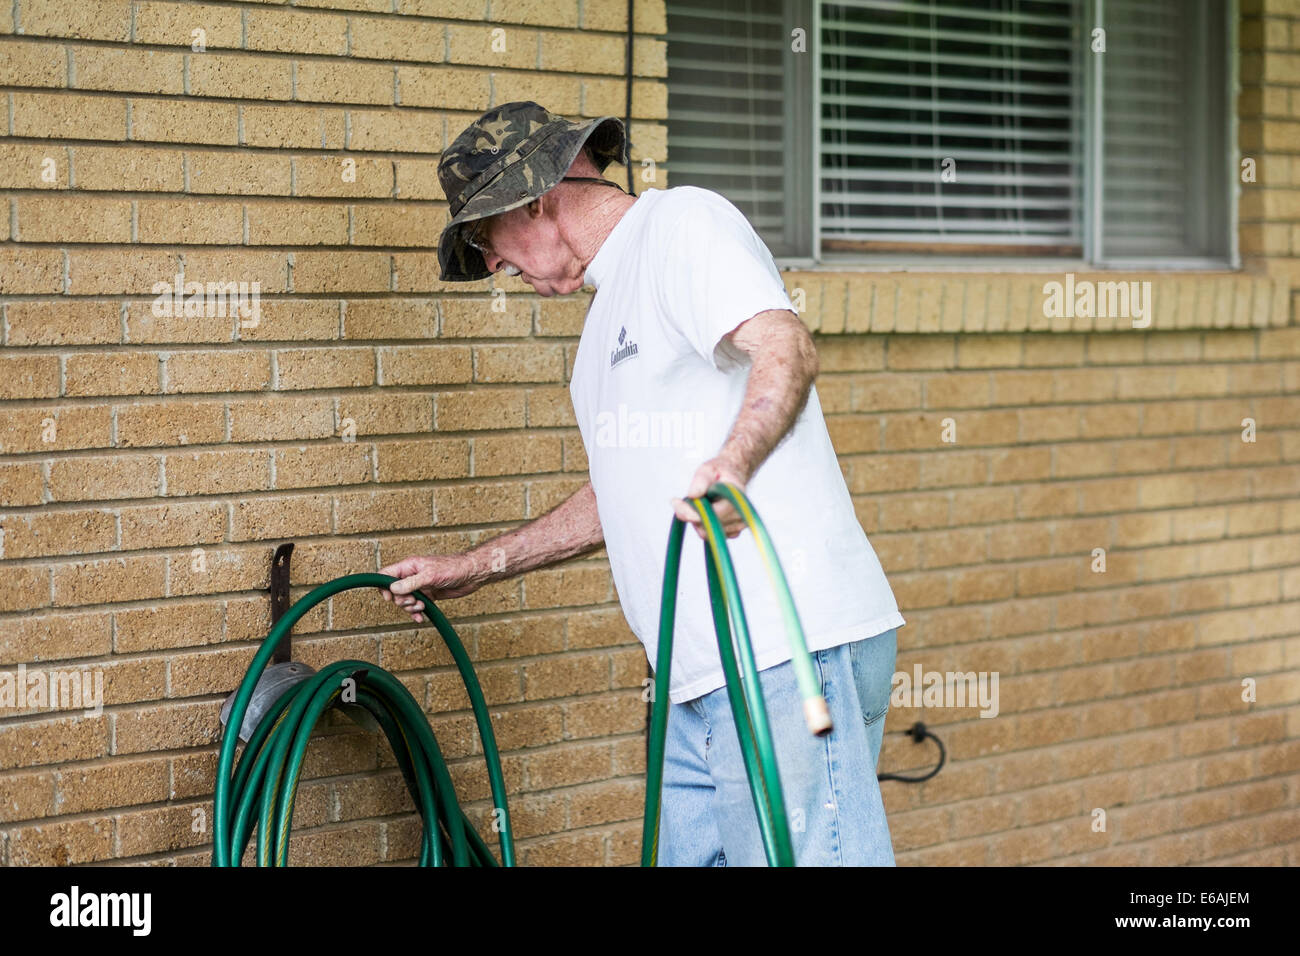 A 76 year old Caucasian man coils a water hose against the house outdoors. USA. - Stock Image